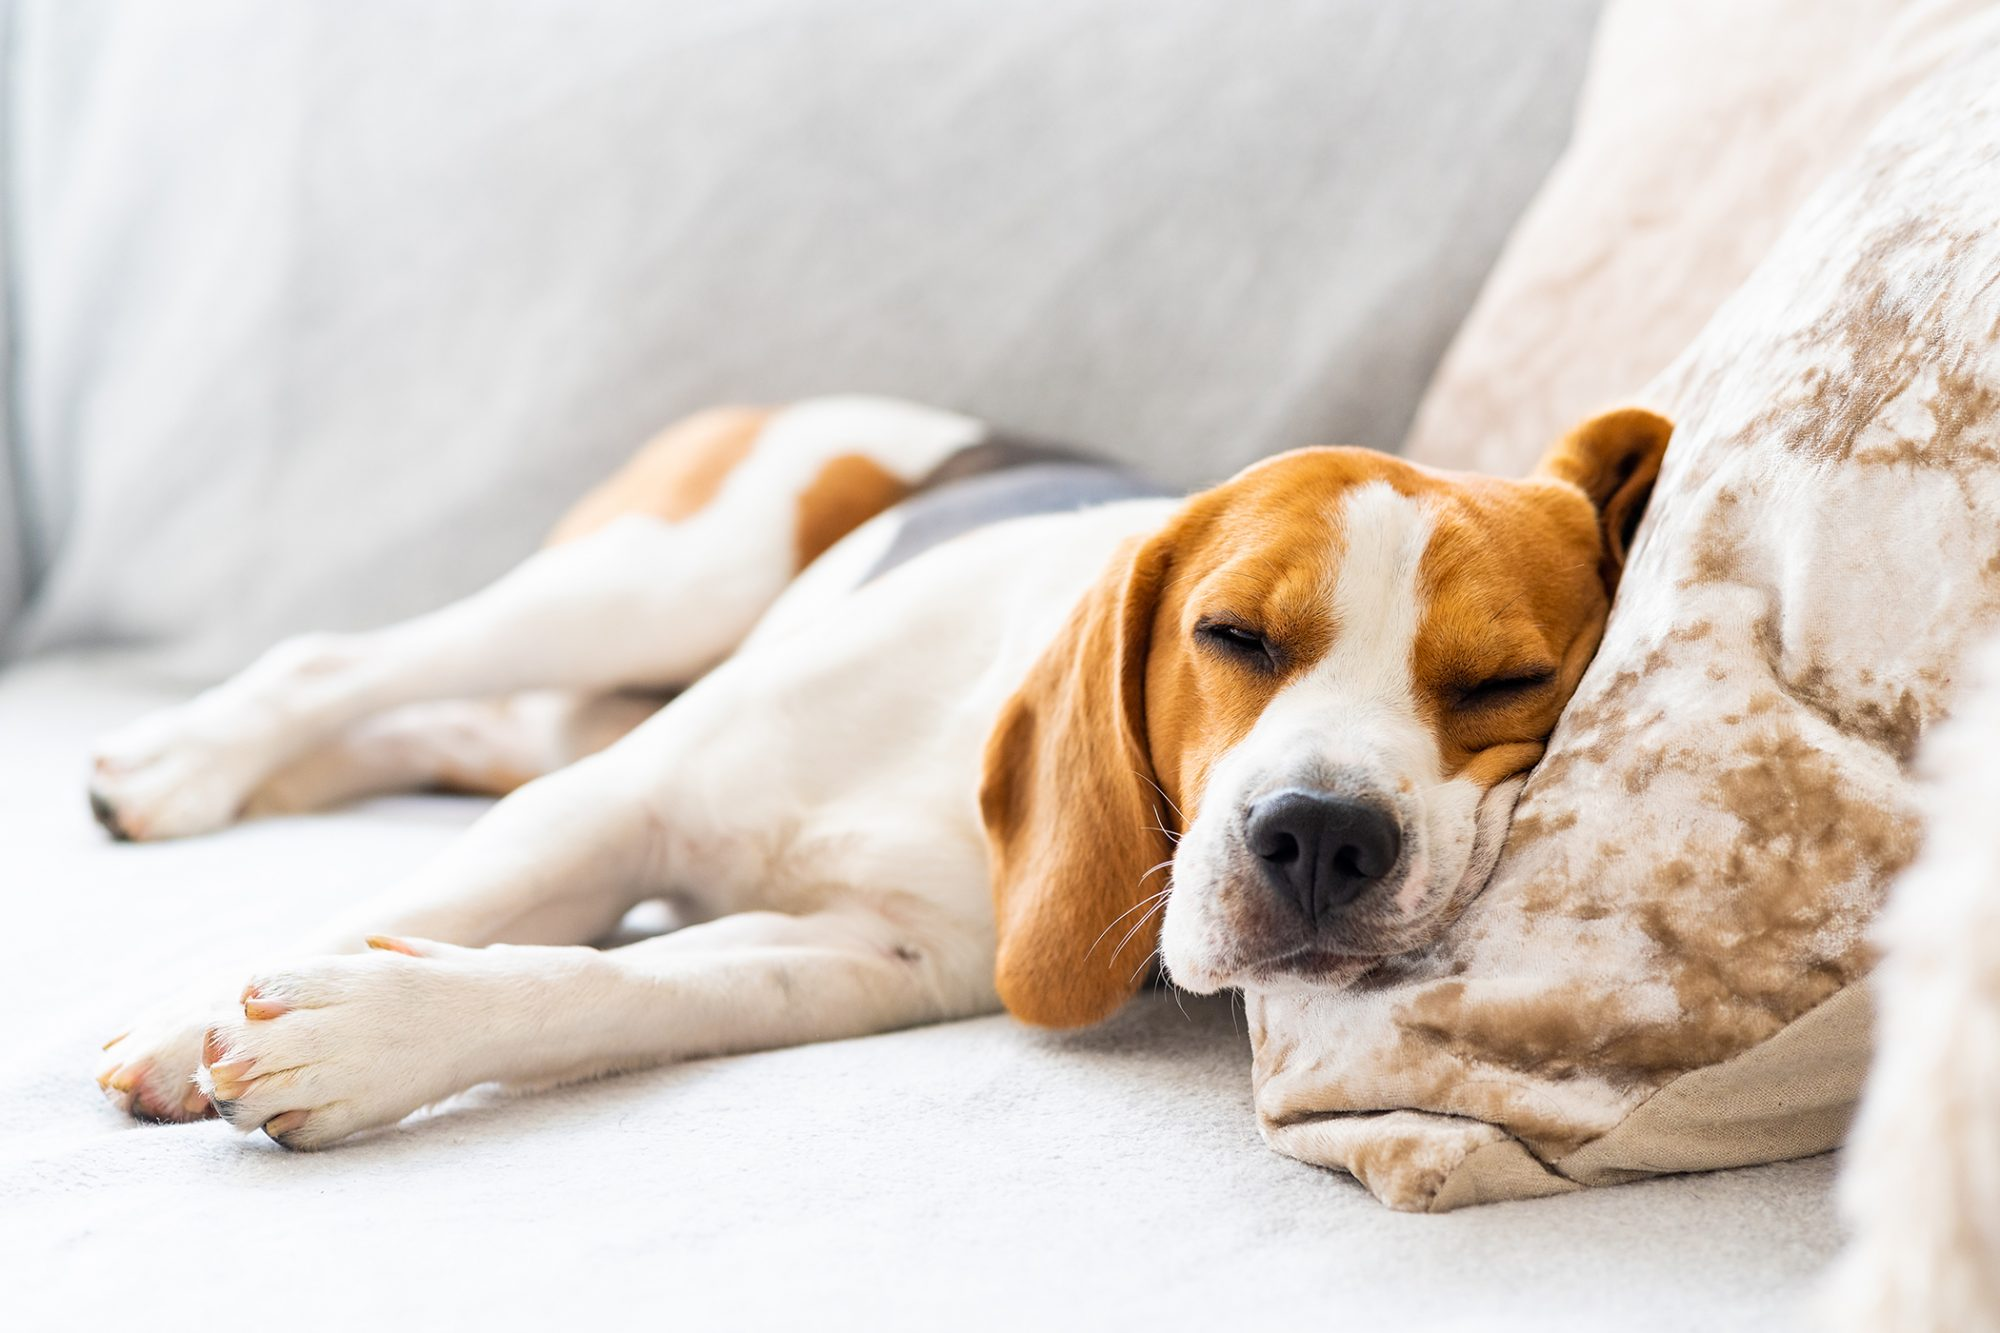 Sleepy beagle sleeps on tan pillow while laying on couch